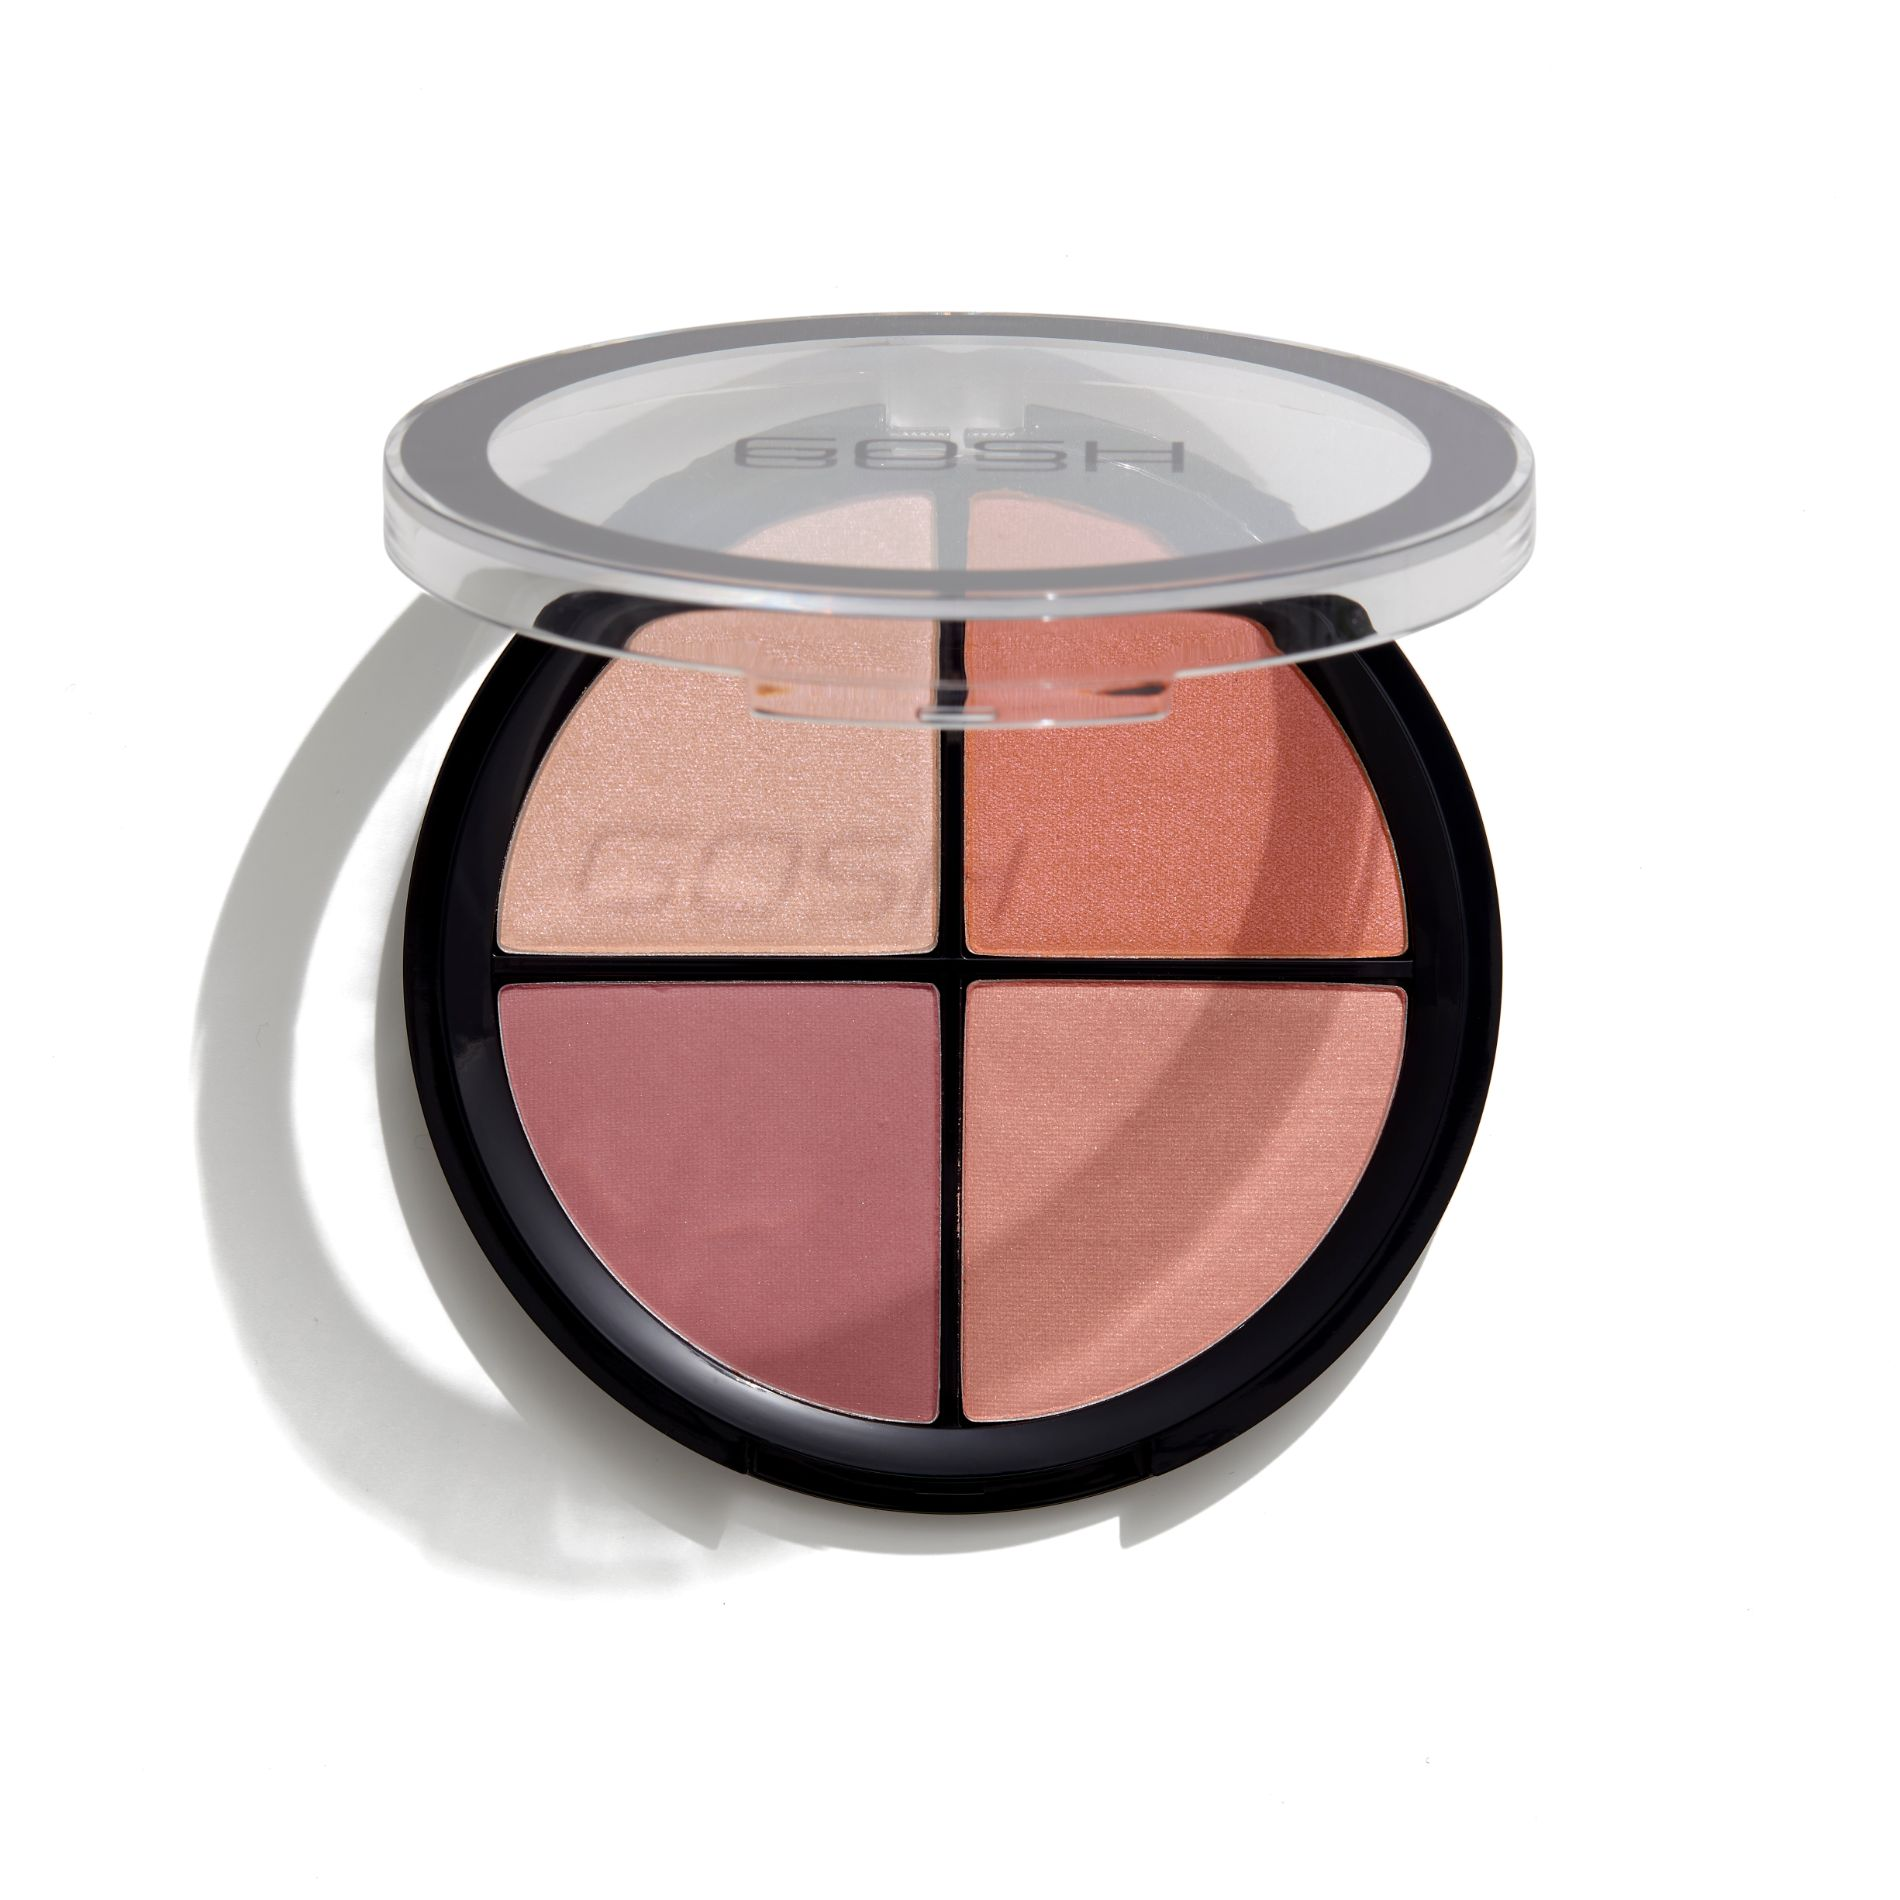 Image of   GOSH GOSH Stroben Glow kit - 002 Blush